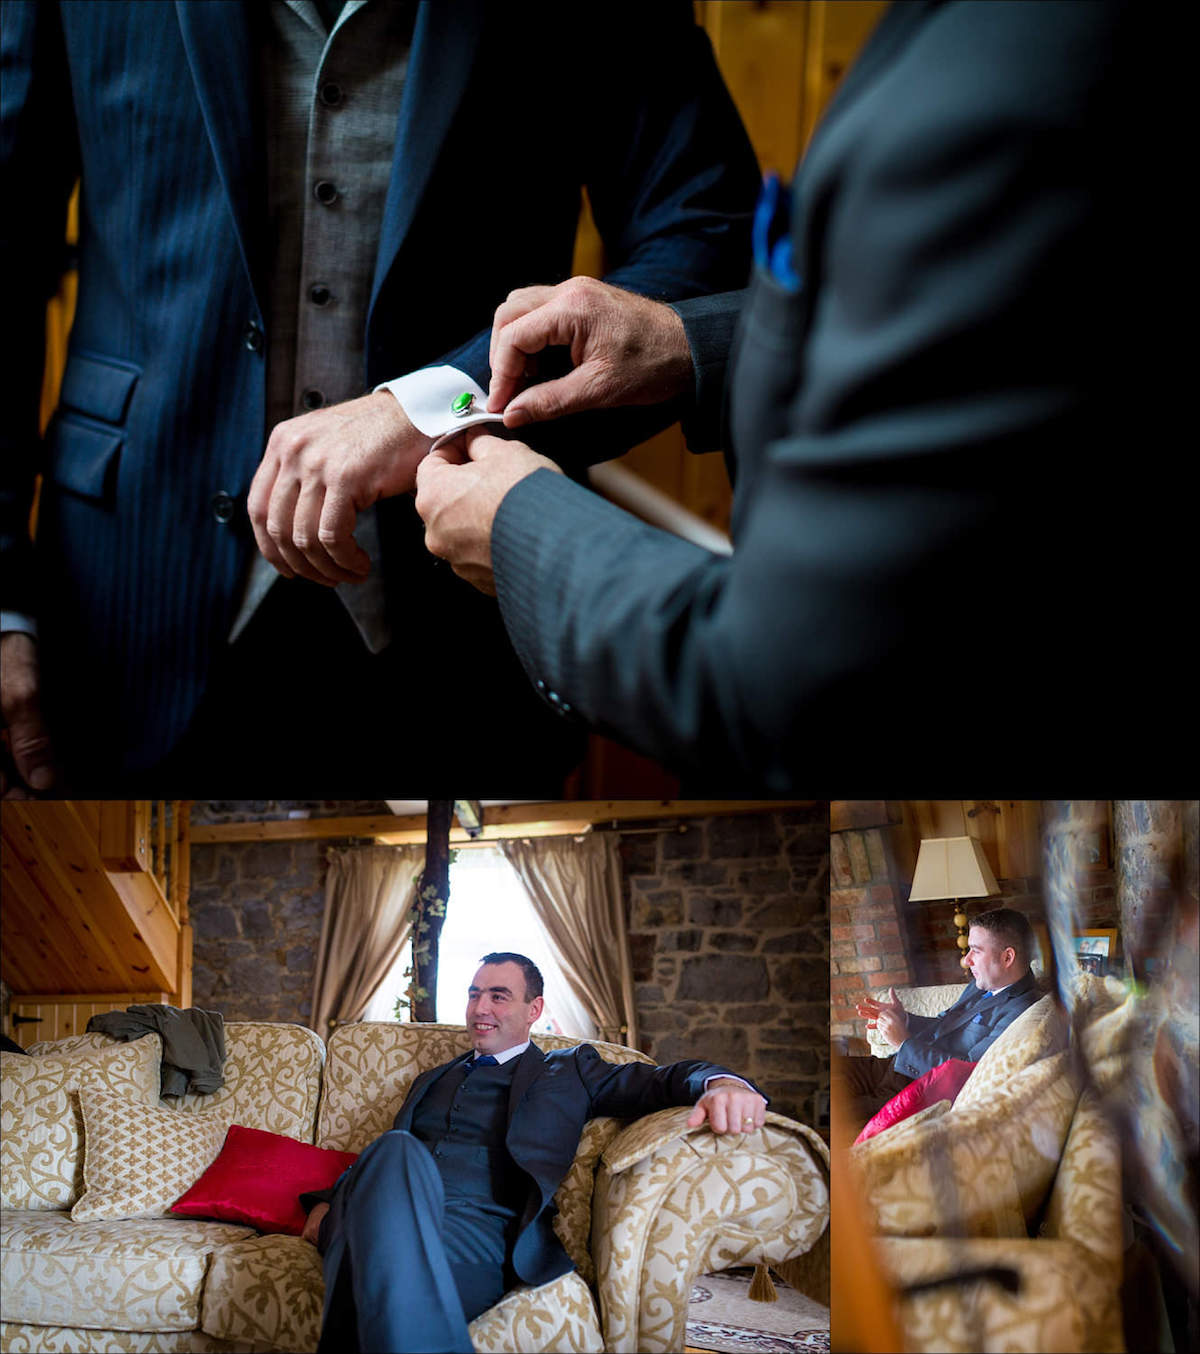 glebe house dowth louth wedding photography david duignan photographer weddings Ireland 0005